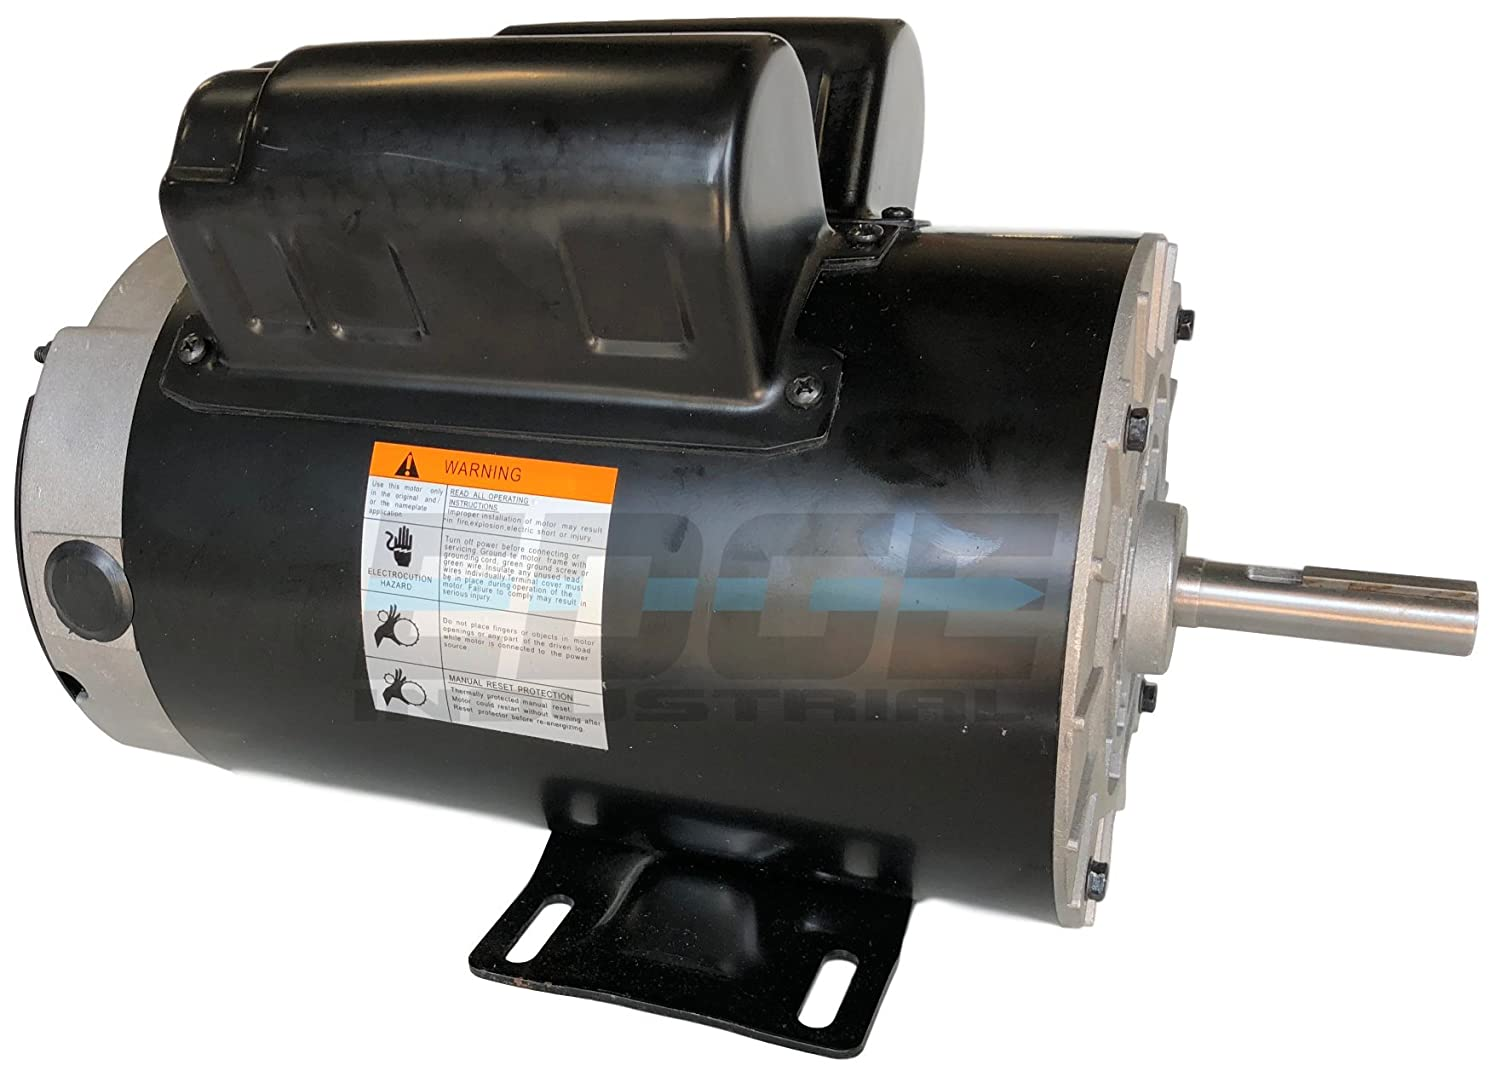 NEW 3.7 HP Compressor Duty Electric Motor, 3450 RPM, 56 Frame, 5/8 Shaft Diameter, 17.2 FLA at 230 VOLT - - Amazon.com